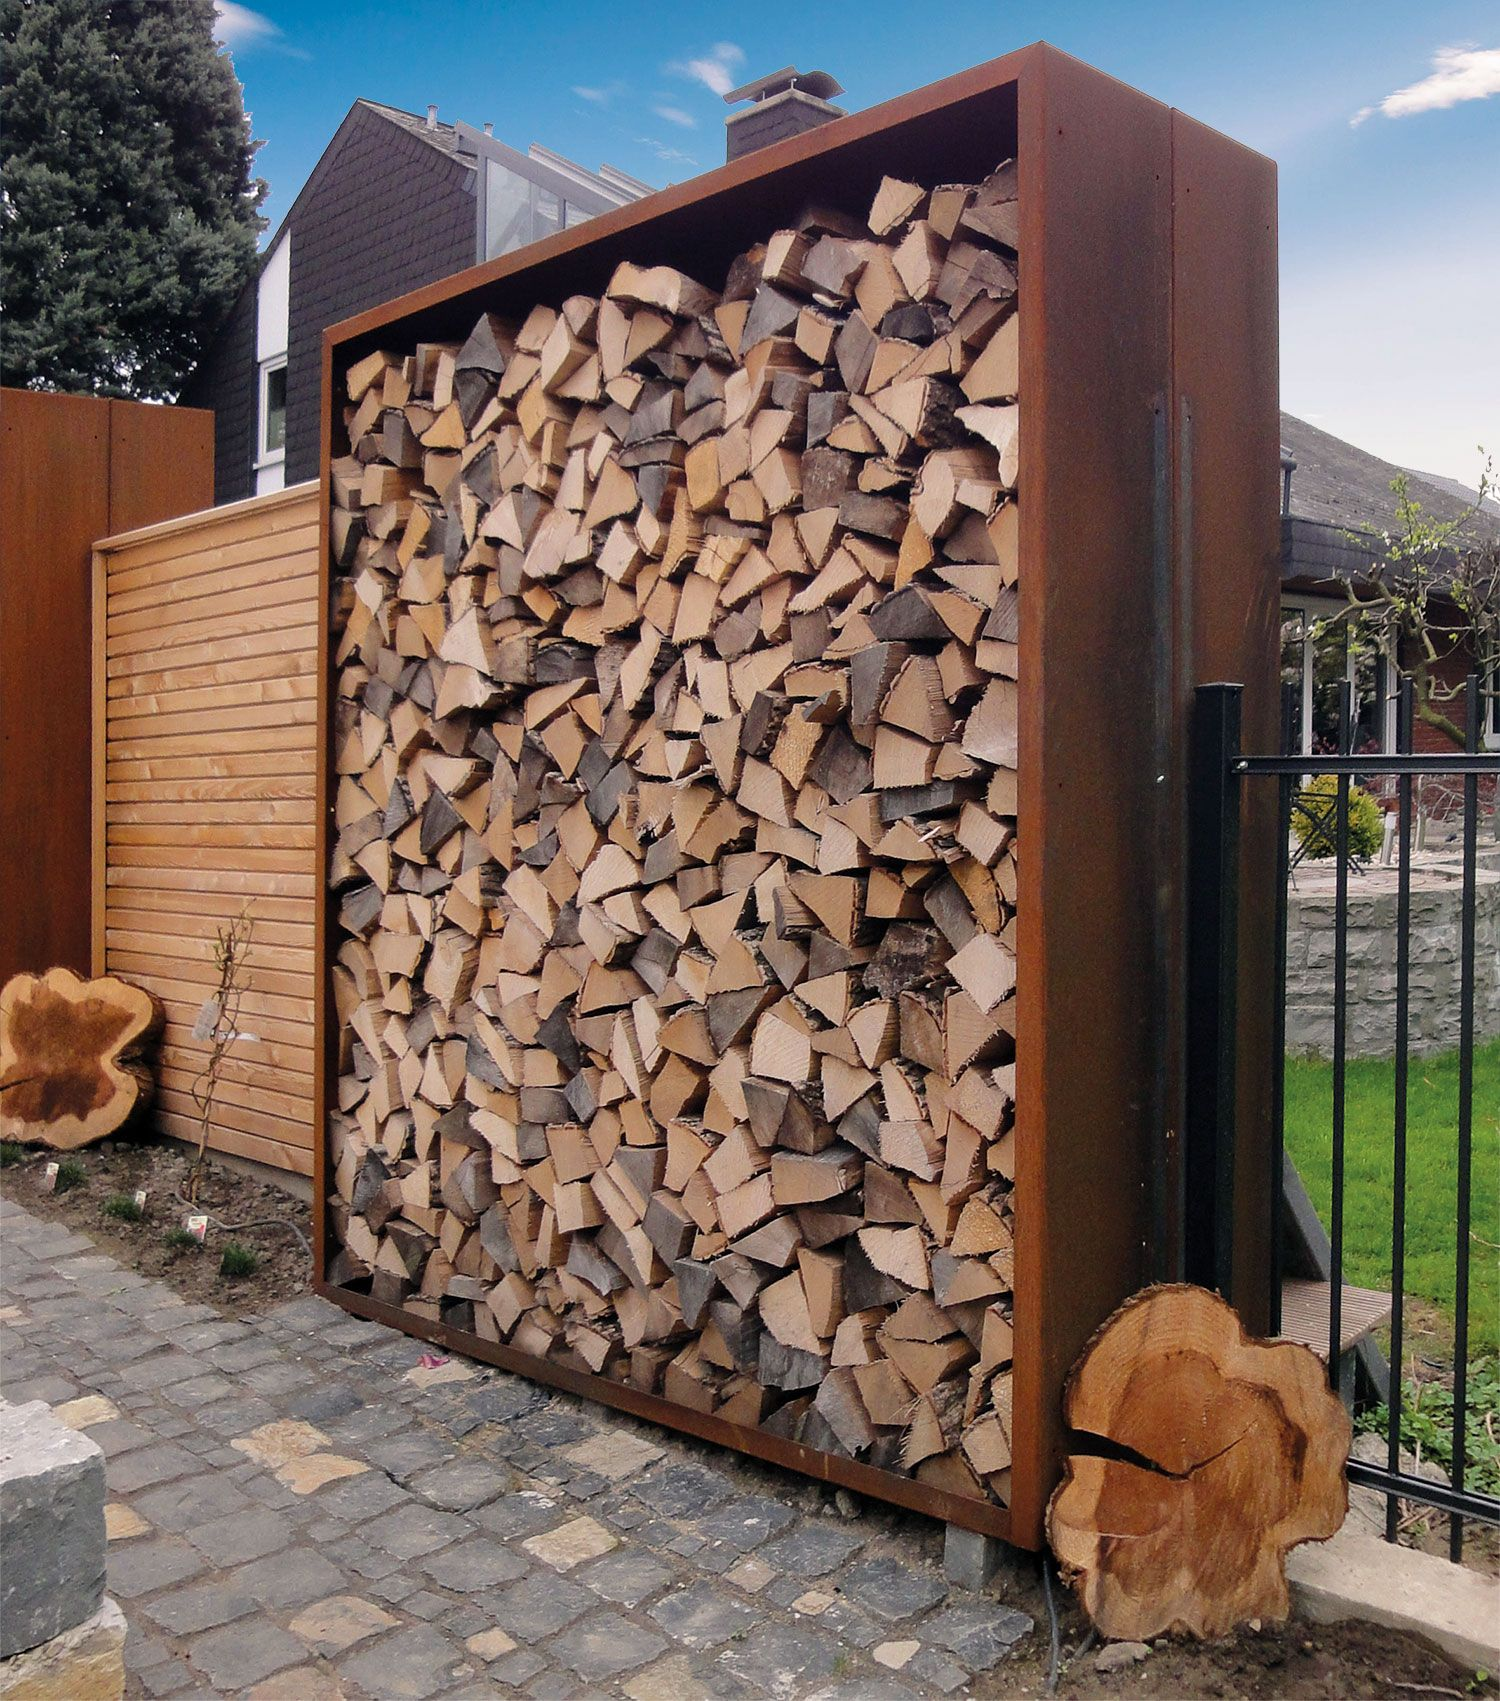 liguna holzlager cortenstahl firewood gardens and firewood storage. Black Bedroom Furniture Sets. Home Design Ideas